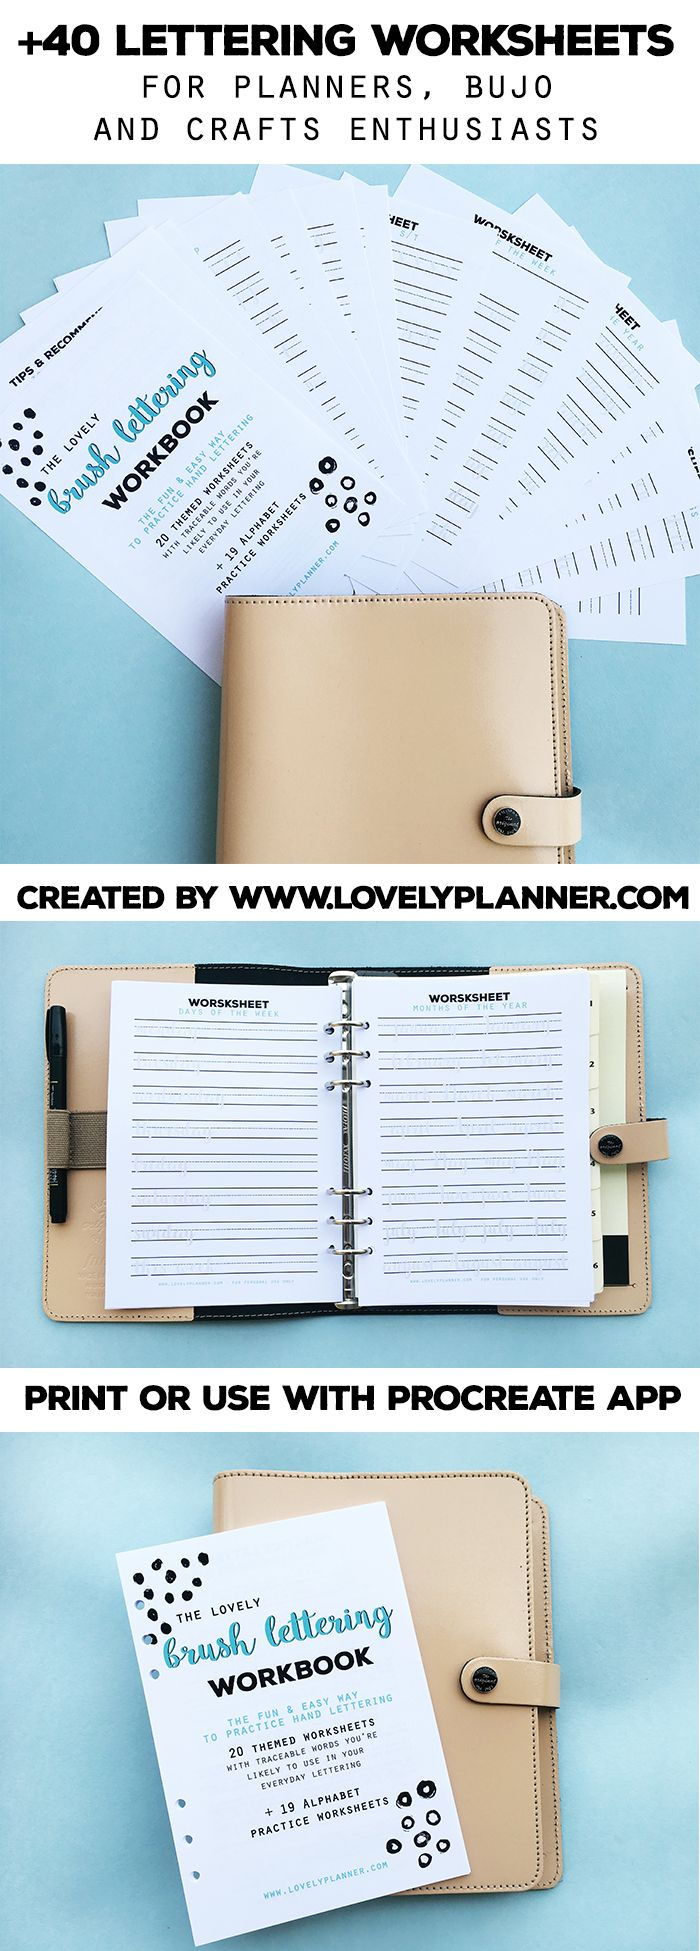 160 best Filofax & ring bound planners images on Pinterest | Day ...